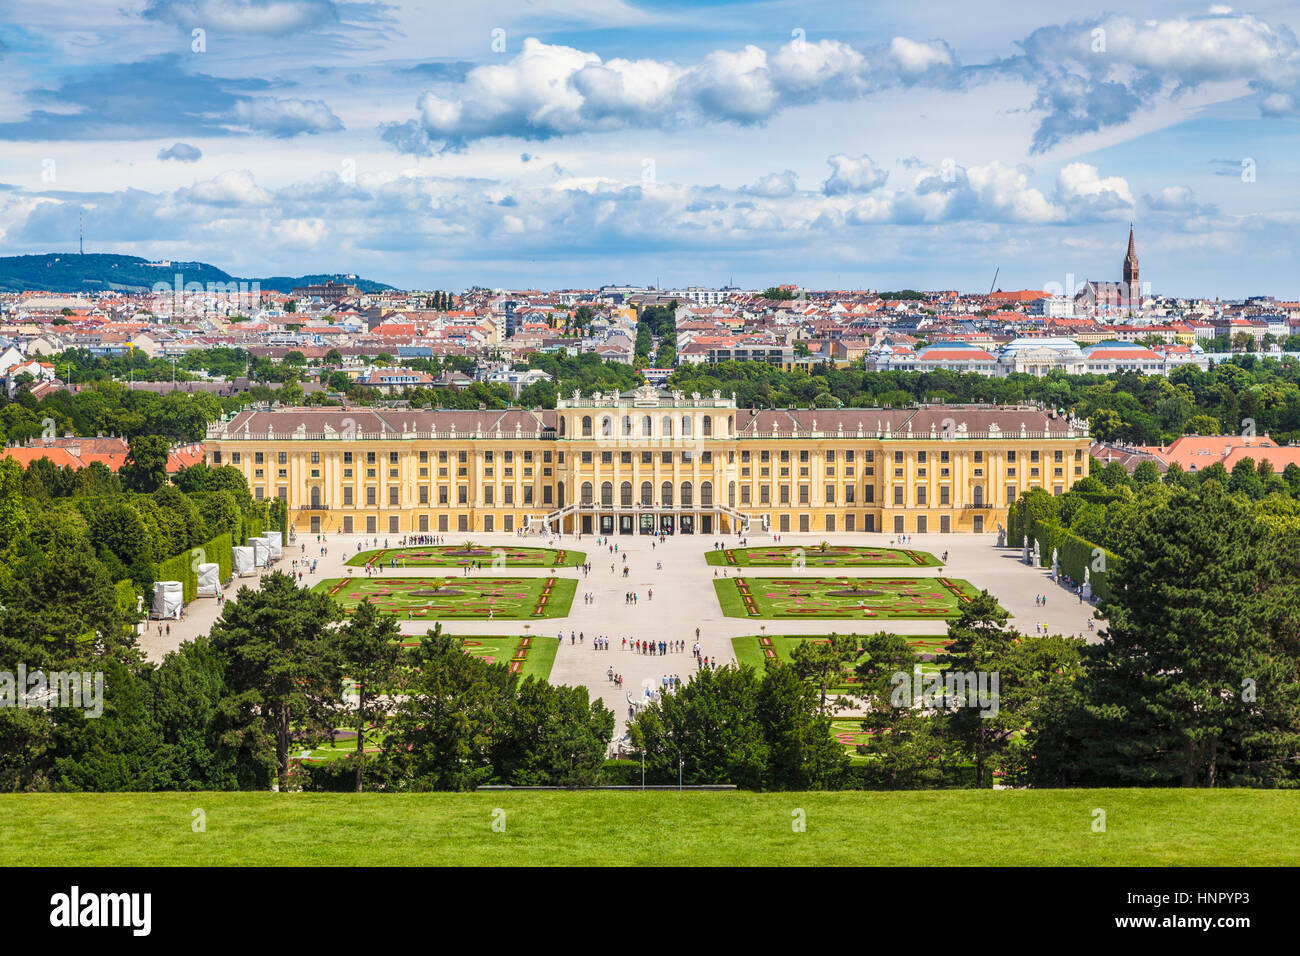 Classic view of famous Schonbrunn Palace with scenic Great Parterre garden on a beautiful sunny day with blue sky - Stock Image